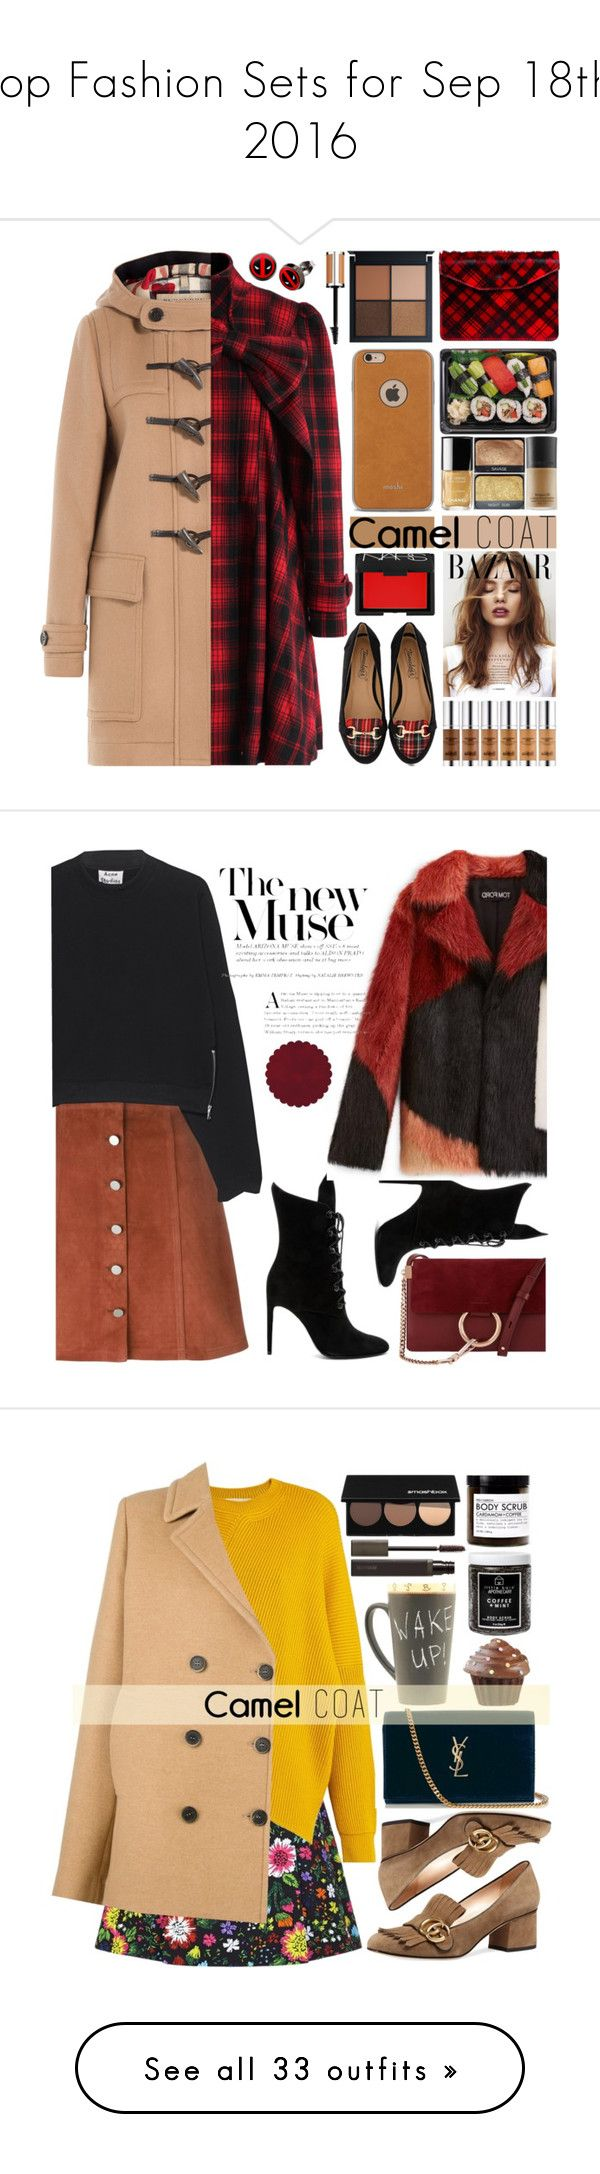 """""""Top Fashion Sets for Sep 18th, 2016"""" by polyvore ❤ liked on Polyvore featuring Chicwish, Timeless, Moshi, Burberry, Jas M.B., NARS Cosmetics, Marvel, Givenchy, Theory and Acne Studios"""